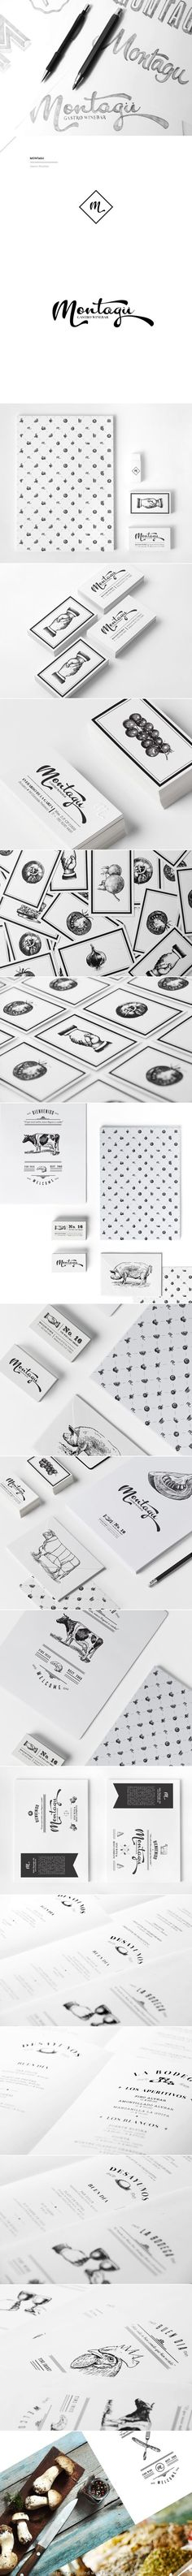 Montagu. Spanish-Mexican Restaurant / food / logo / branding / identity / packaging / business card / menu / black and white / lines / shapes / illustrations / animals